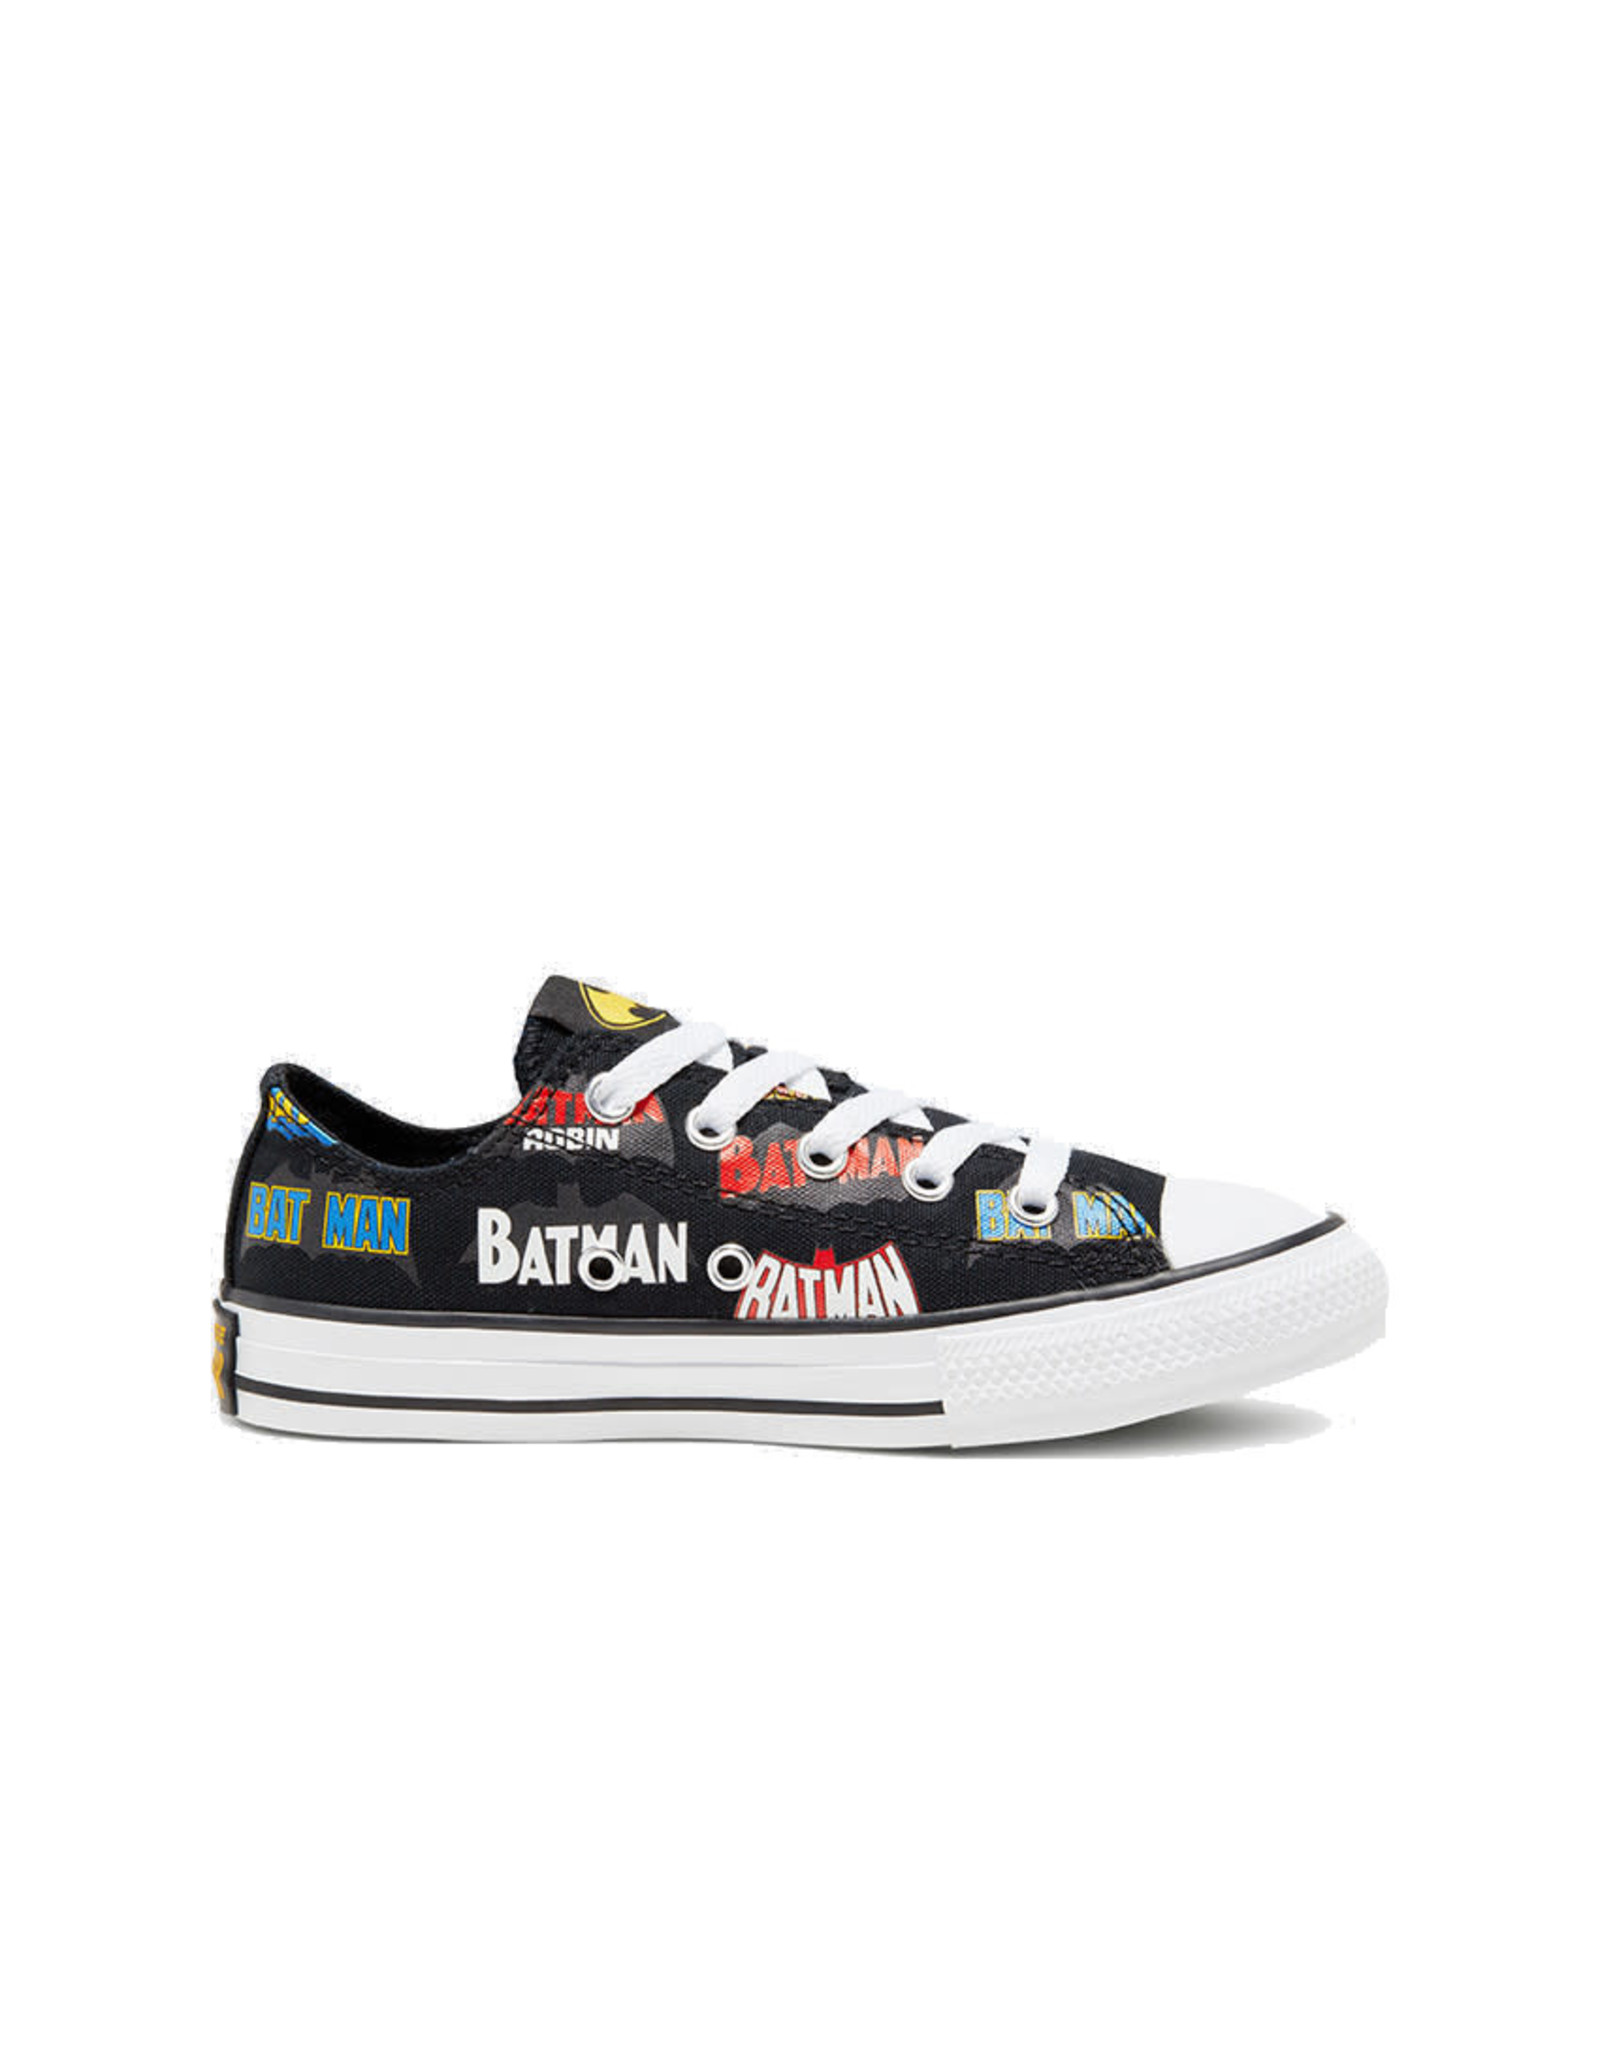 CONVERSE CHUCK TAYLOR ALL STAR OX BATMAN BLACK/WHITE/MULTI CZBATB-367321C